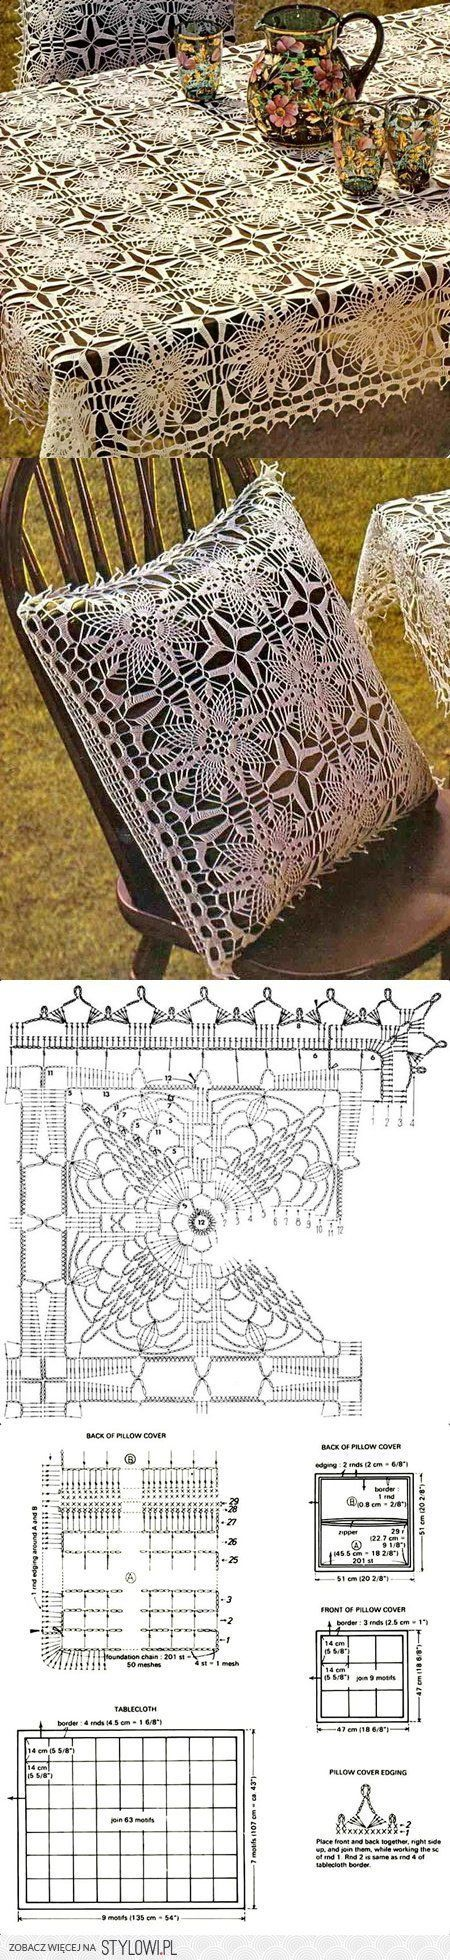 Gráfico para toalhas | Home crochet and knit | Pinterest | Ganchillo ...